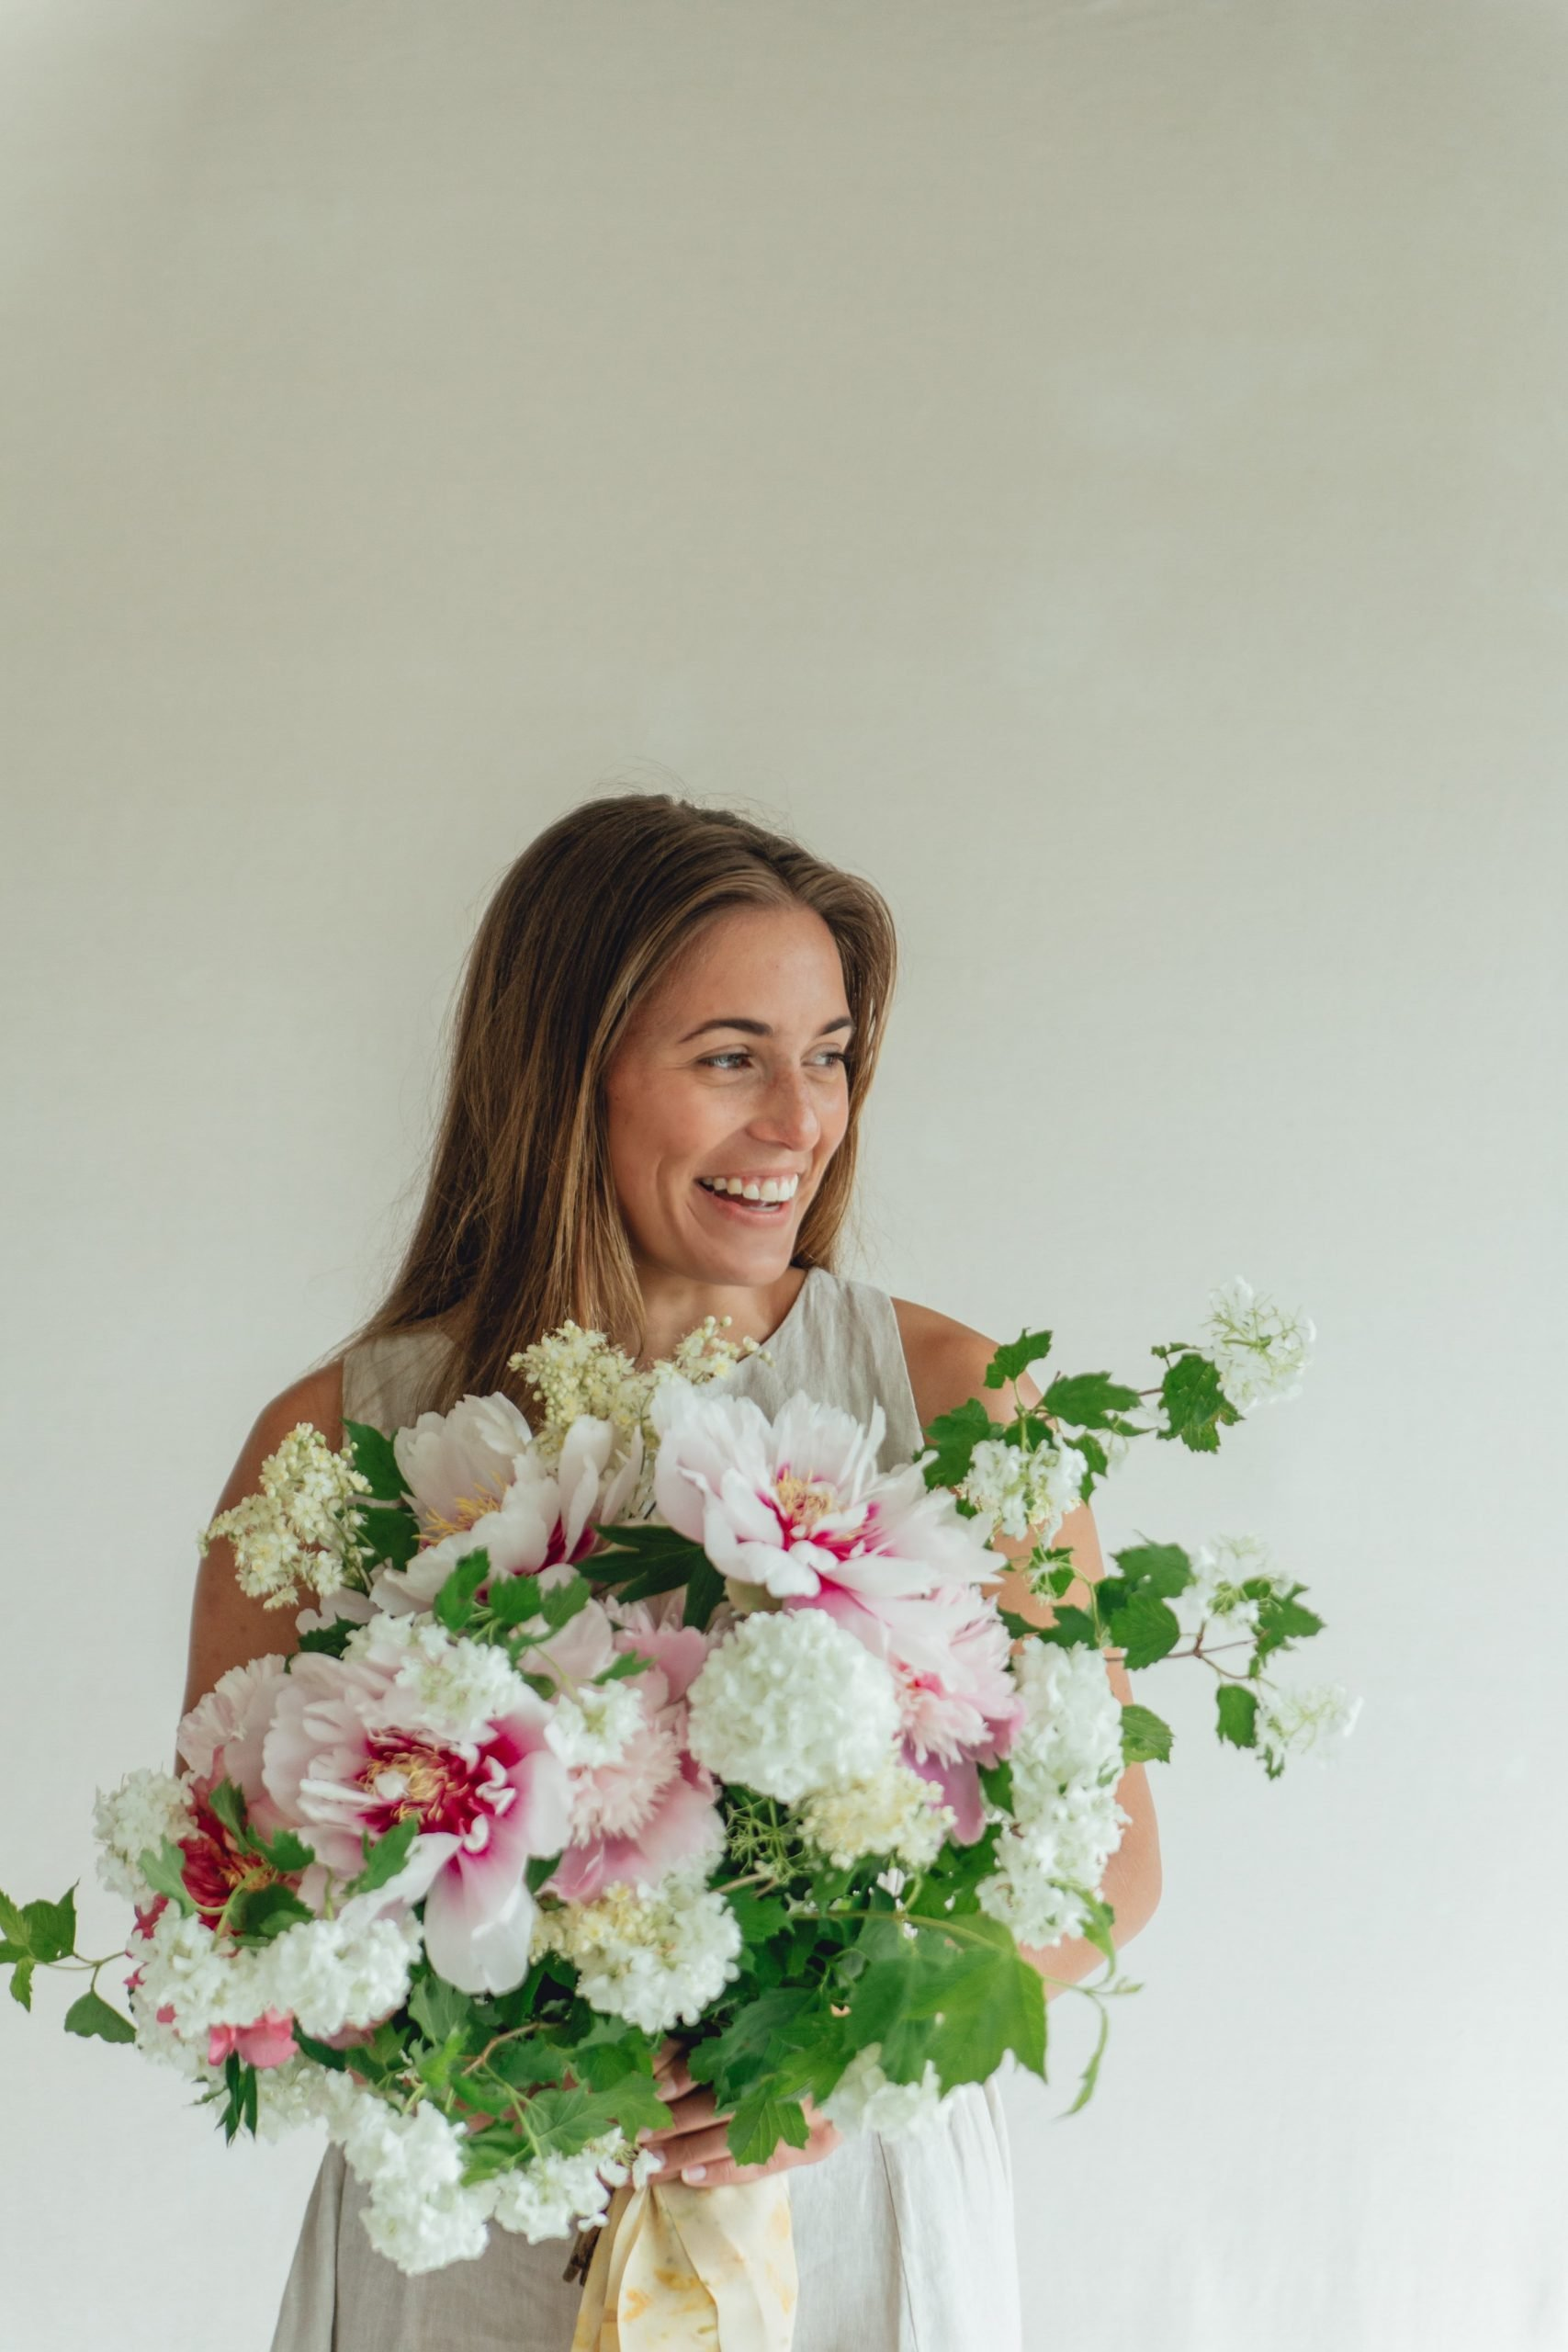 Rose_and_Laurel_Smiling_girl_holding_ Spring_bouquet_in_shades_of_pink